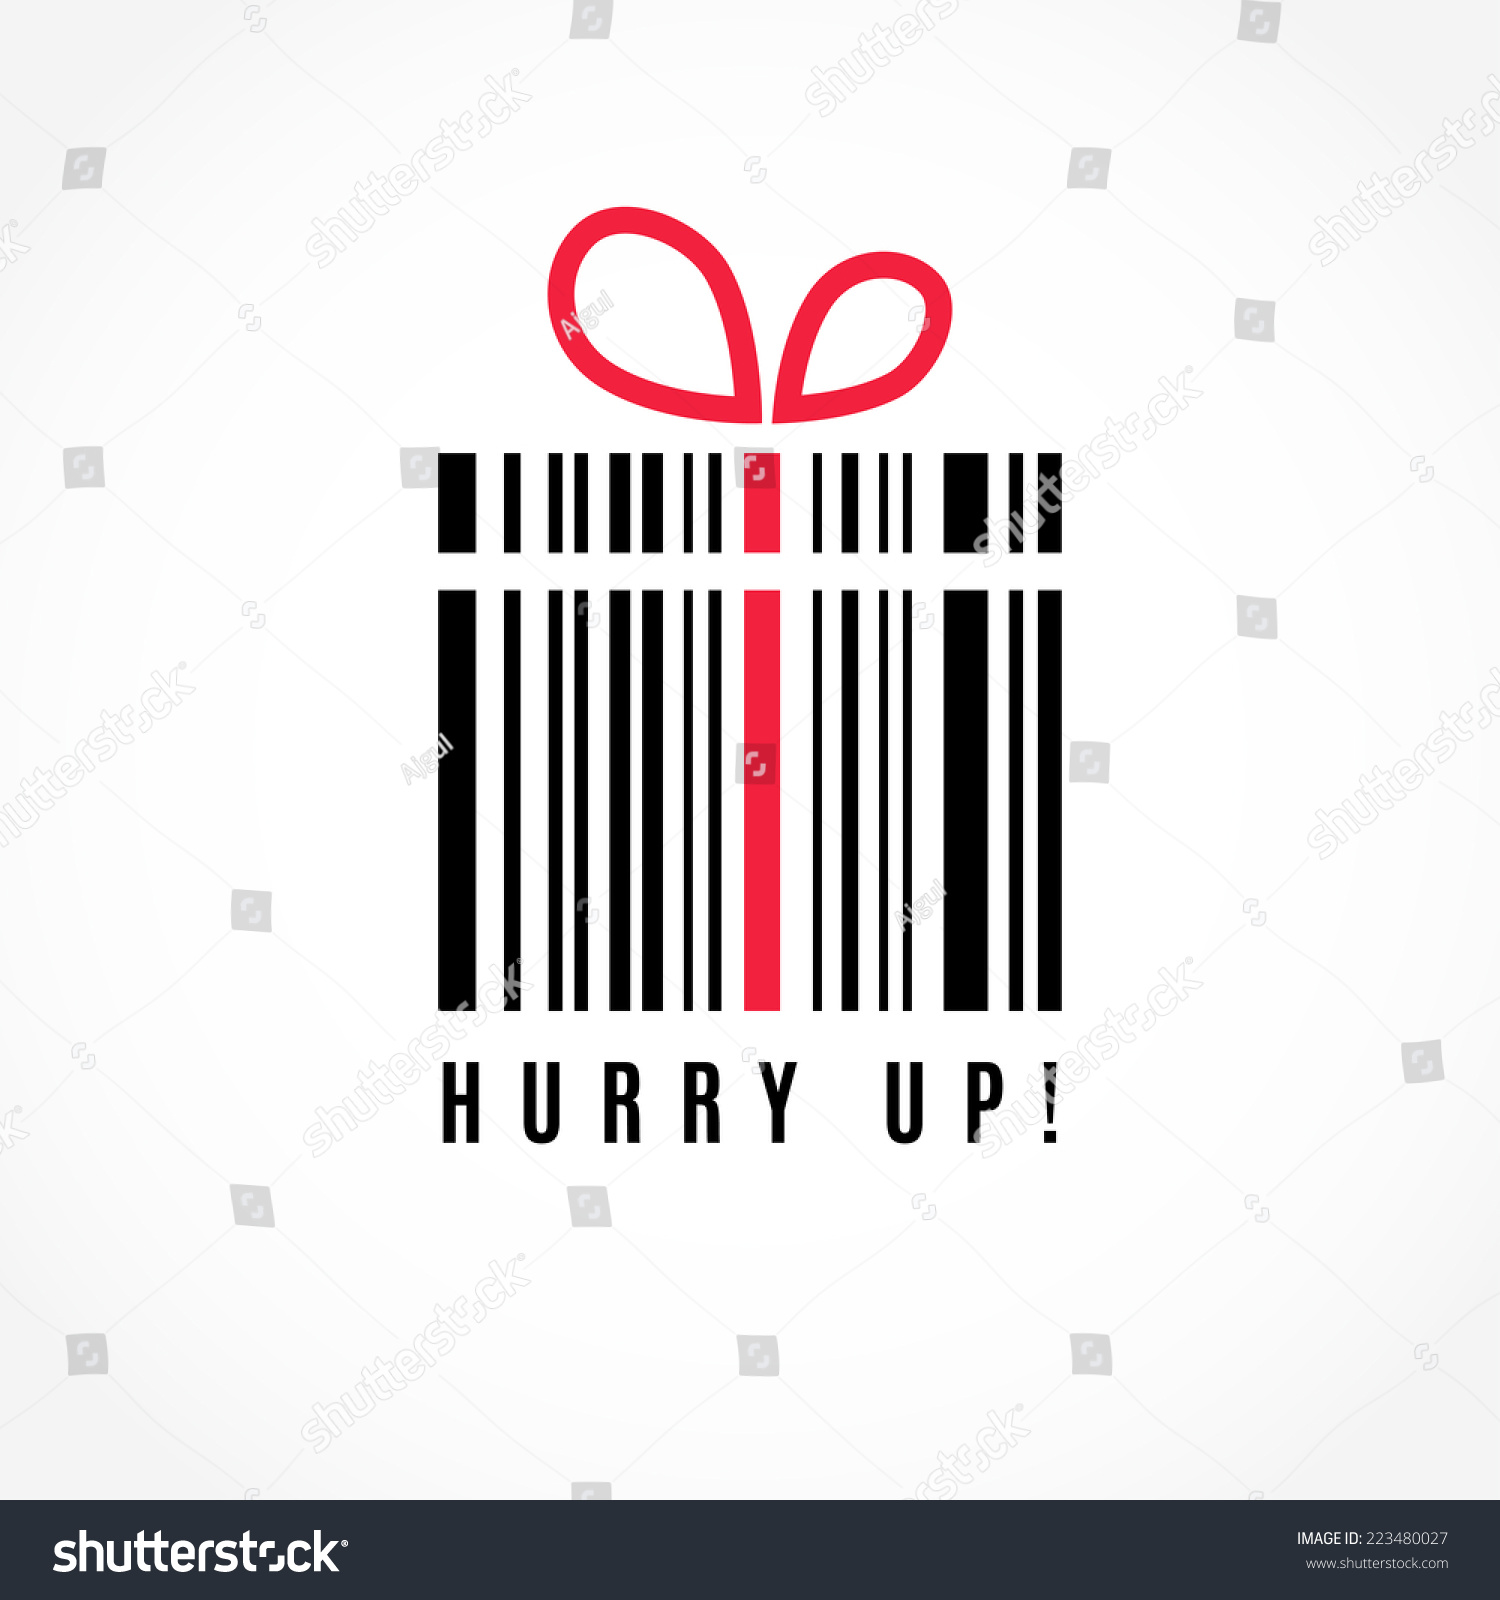 Hurry up! Discount. Present barcode vector image. Logo design.